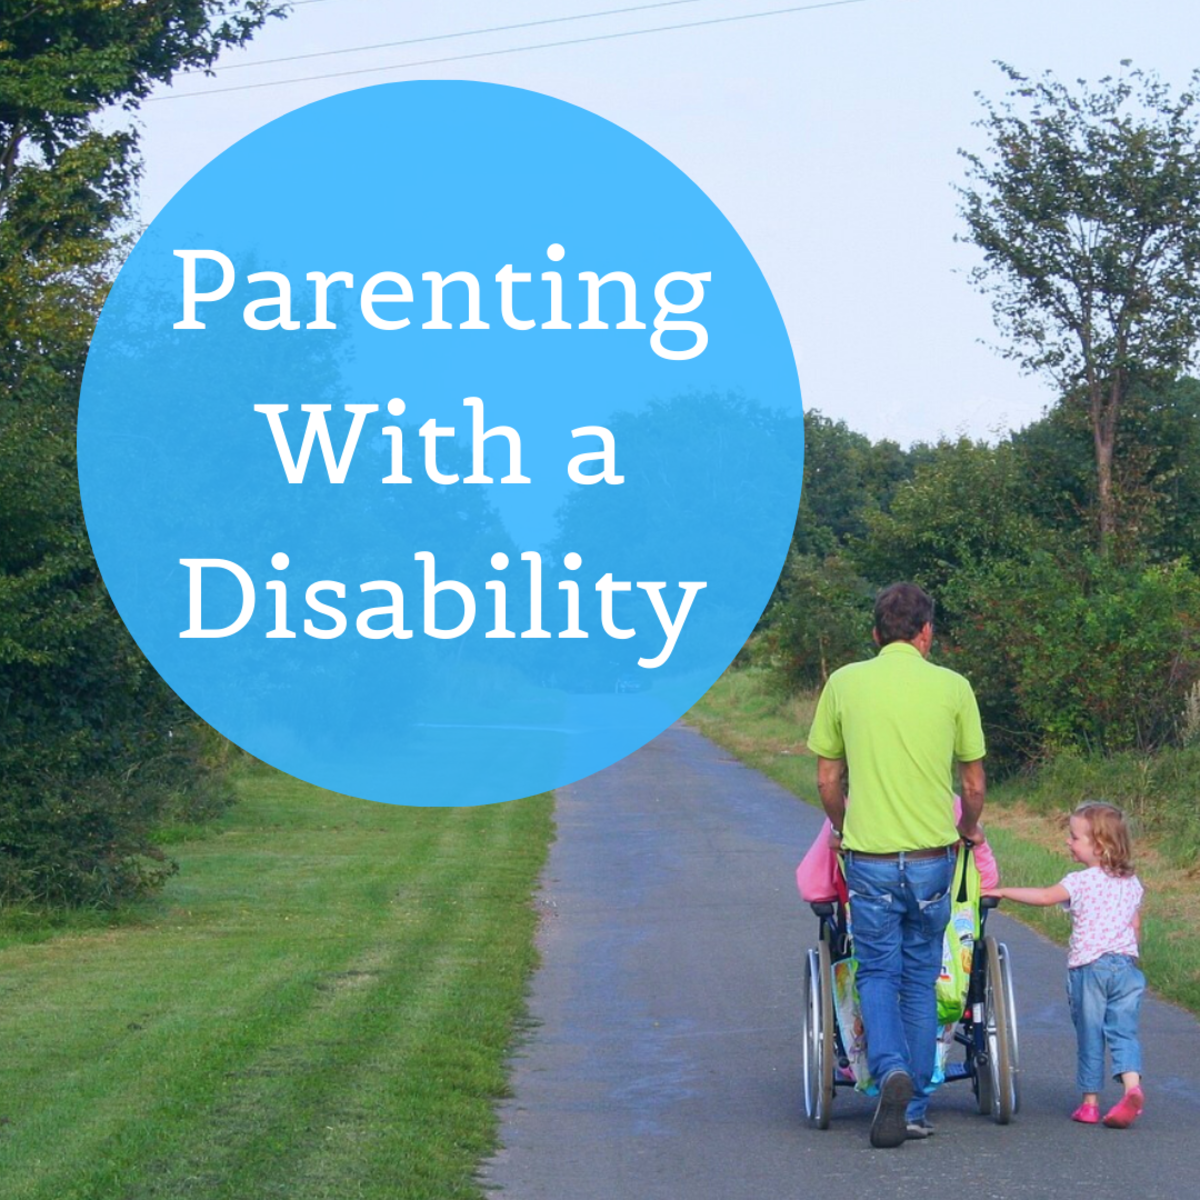 How to Be a Good Parent While Having a Disability